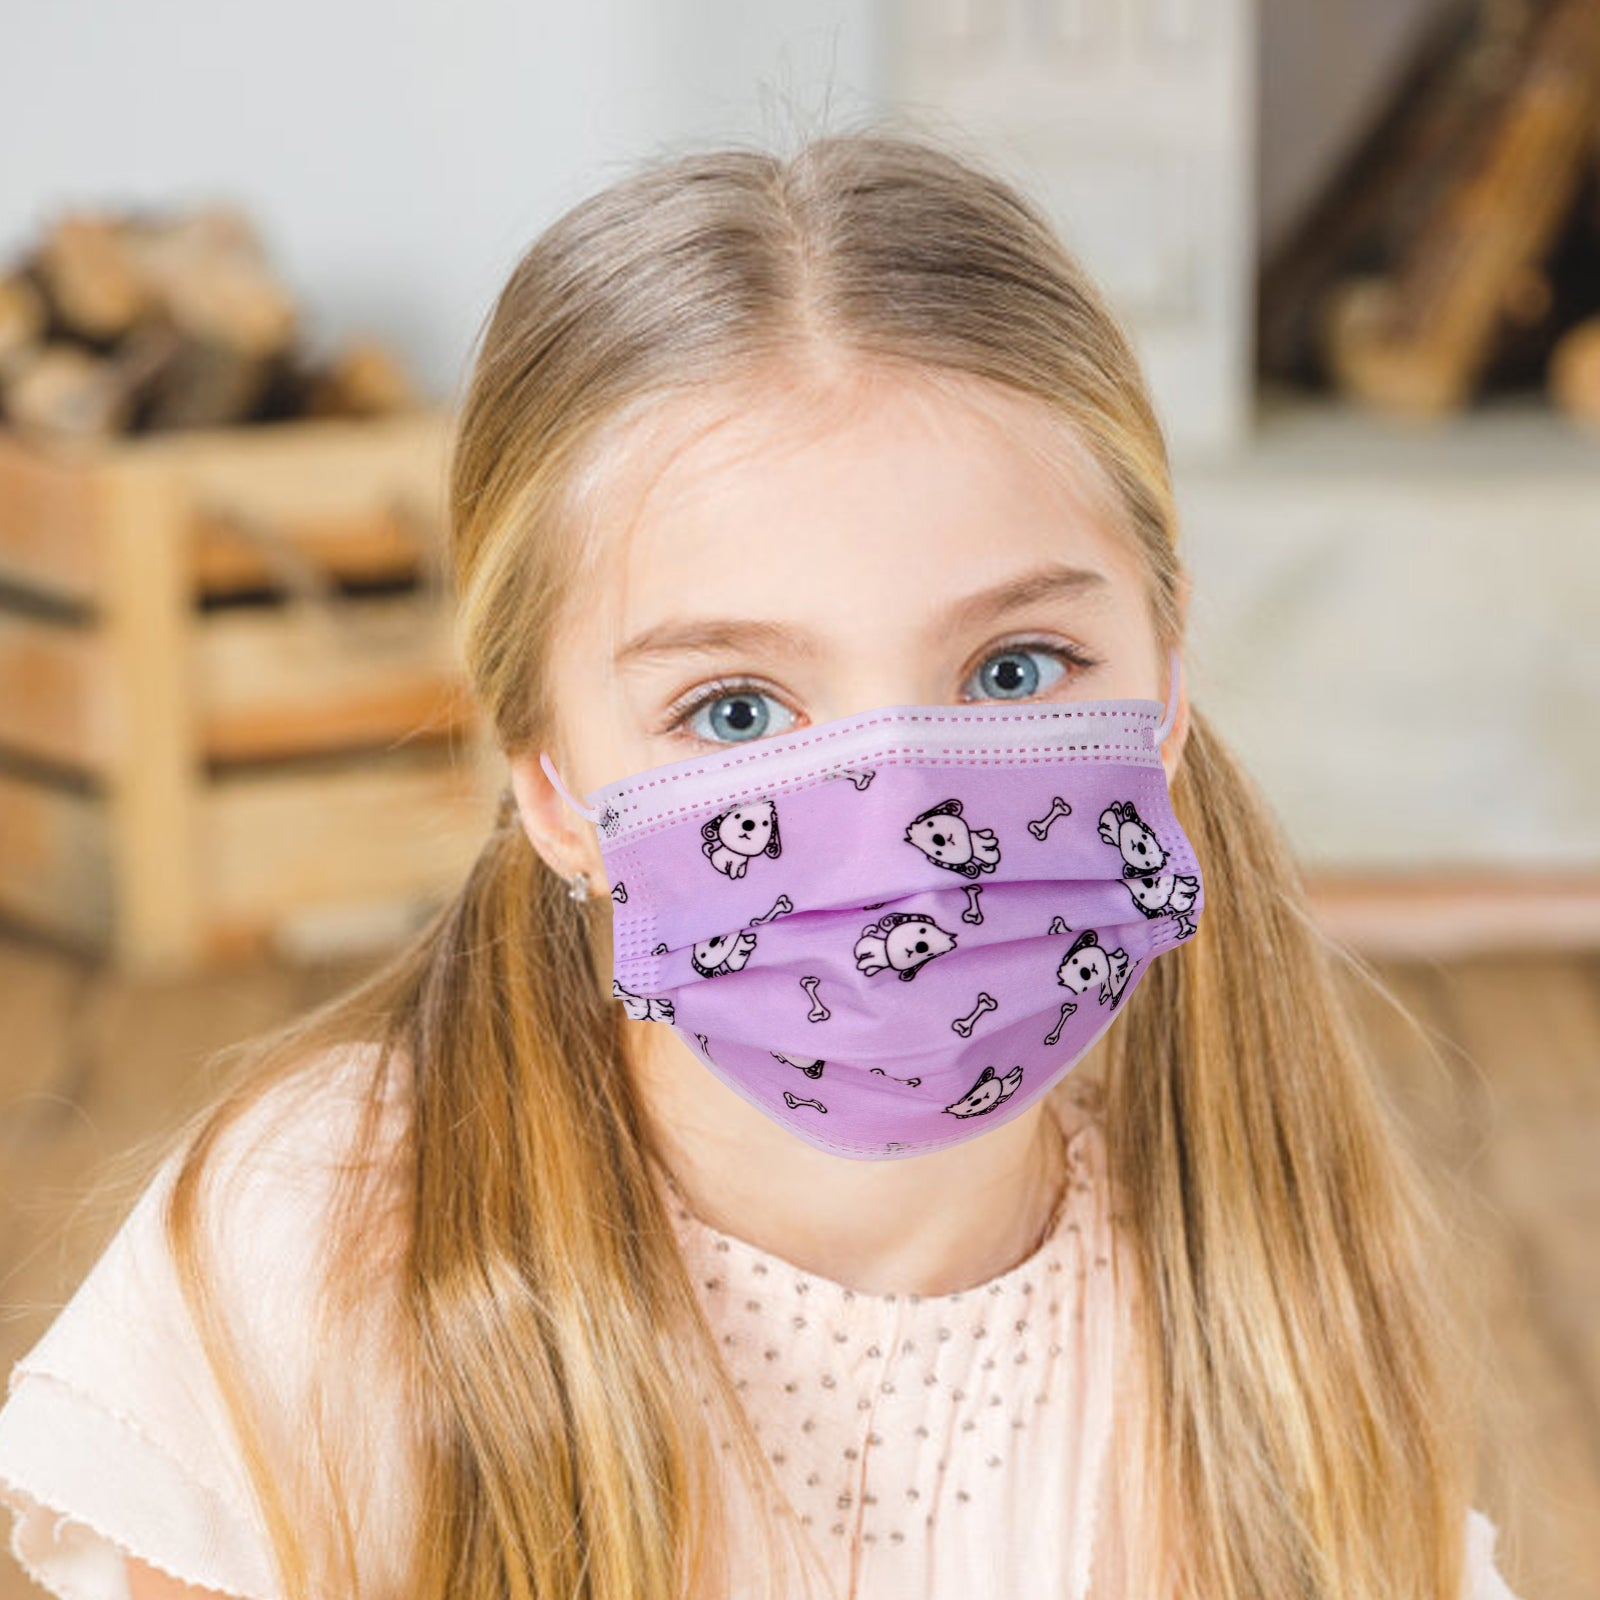 KD-FMPP  American Bling Kids 3 Ply Disposable Purple Dogs & Bones Face Mask Non-Medical (5pcs/Pack)